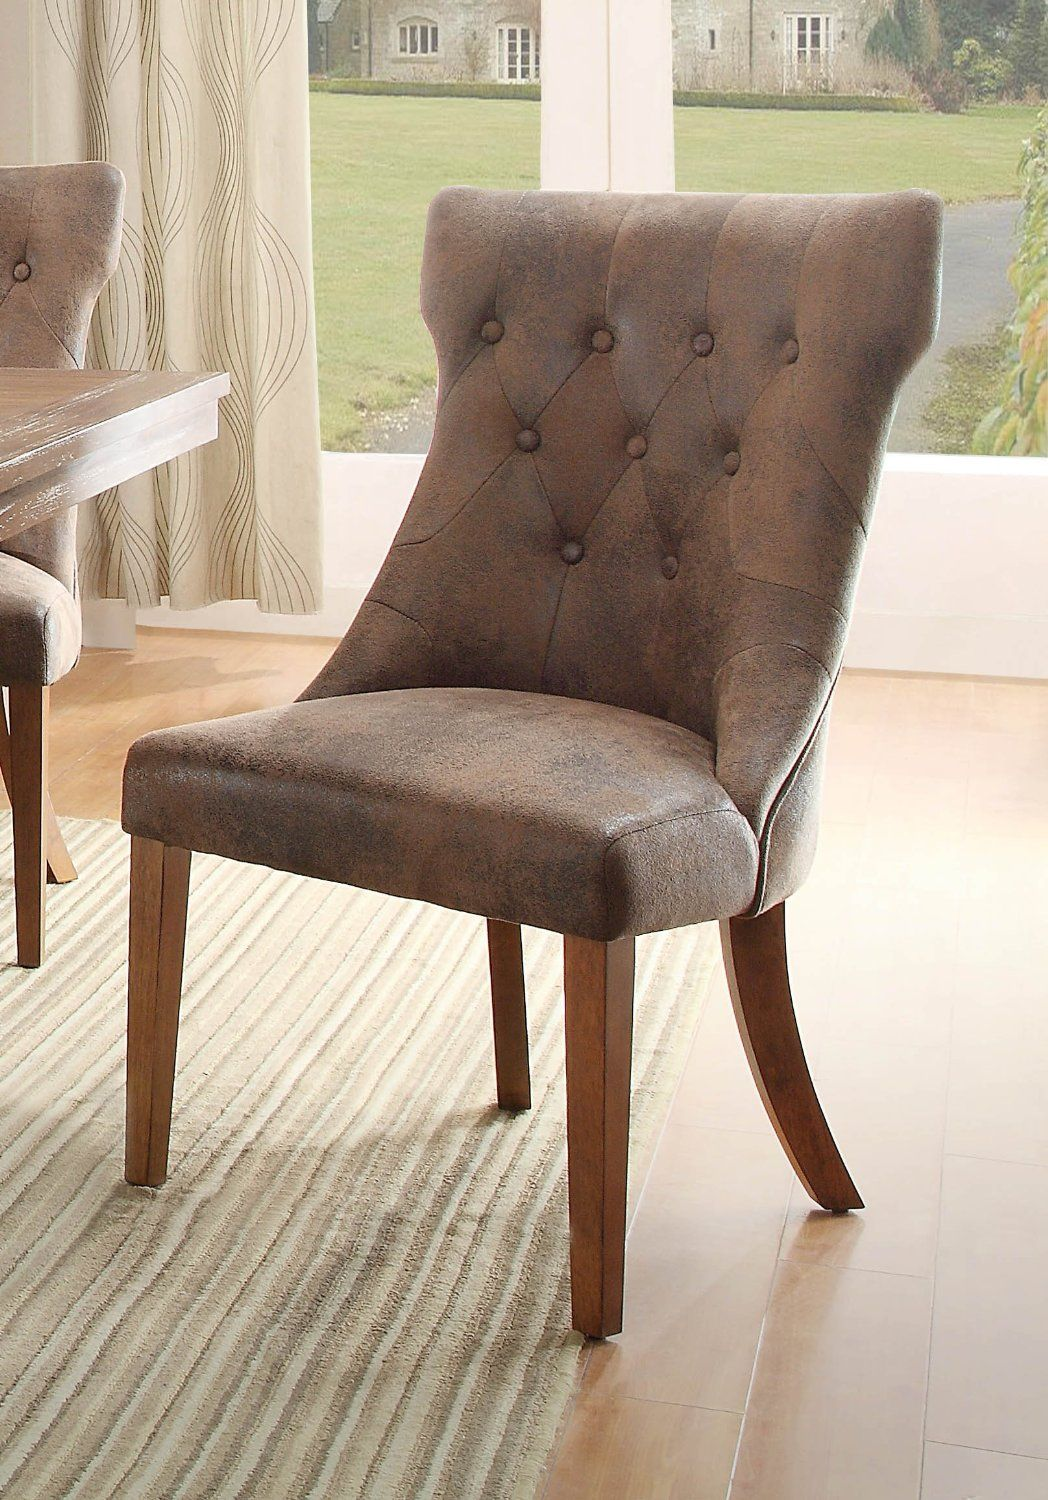 dining chair option-set of 2